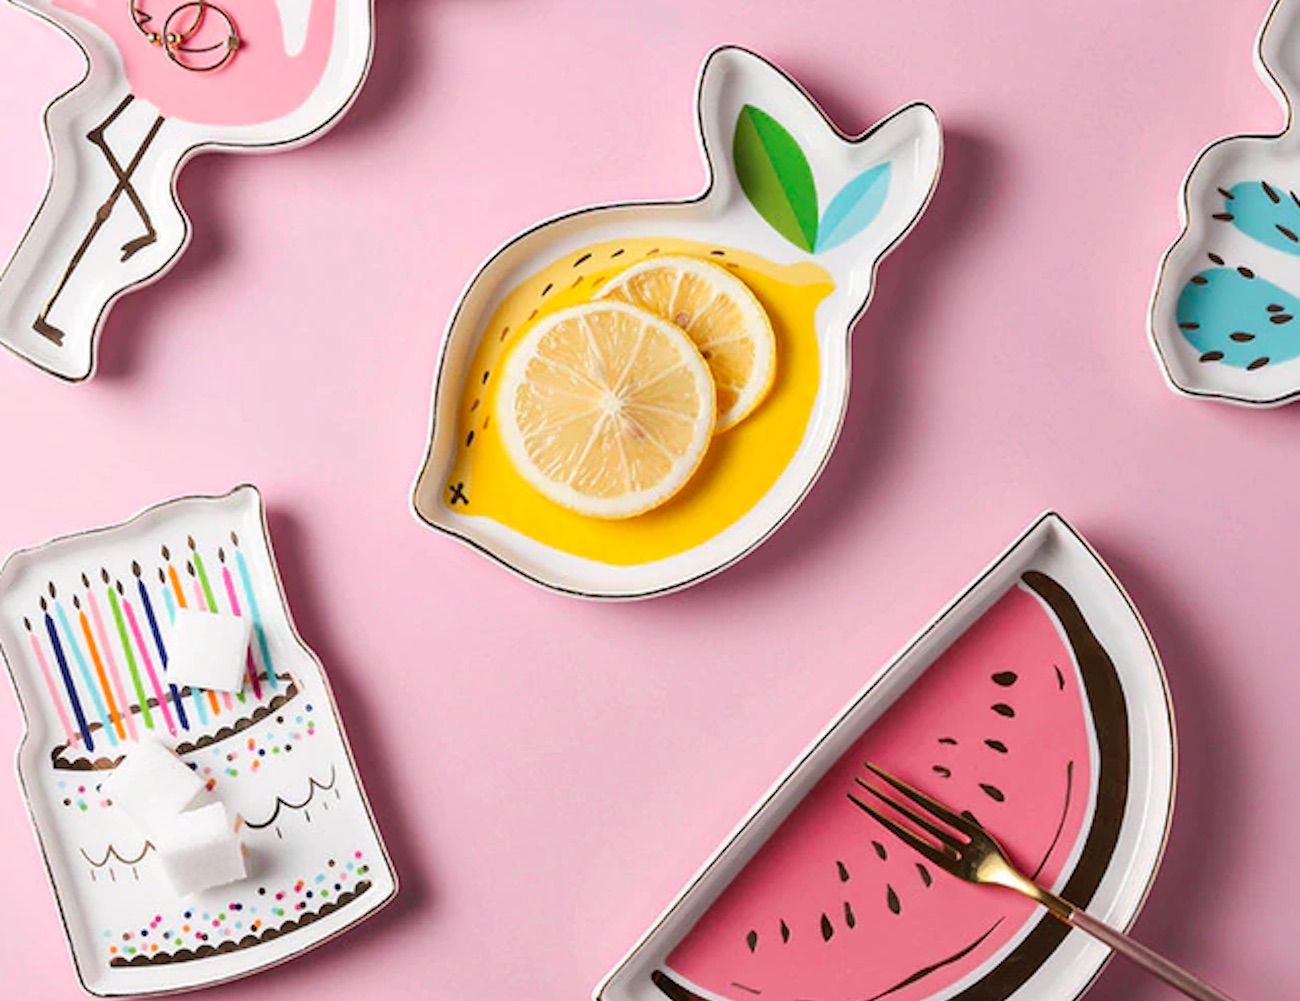 Pop Art Cartoon Valet Dishes adds a pop of fun to your organization